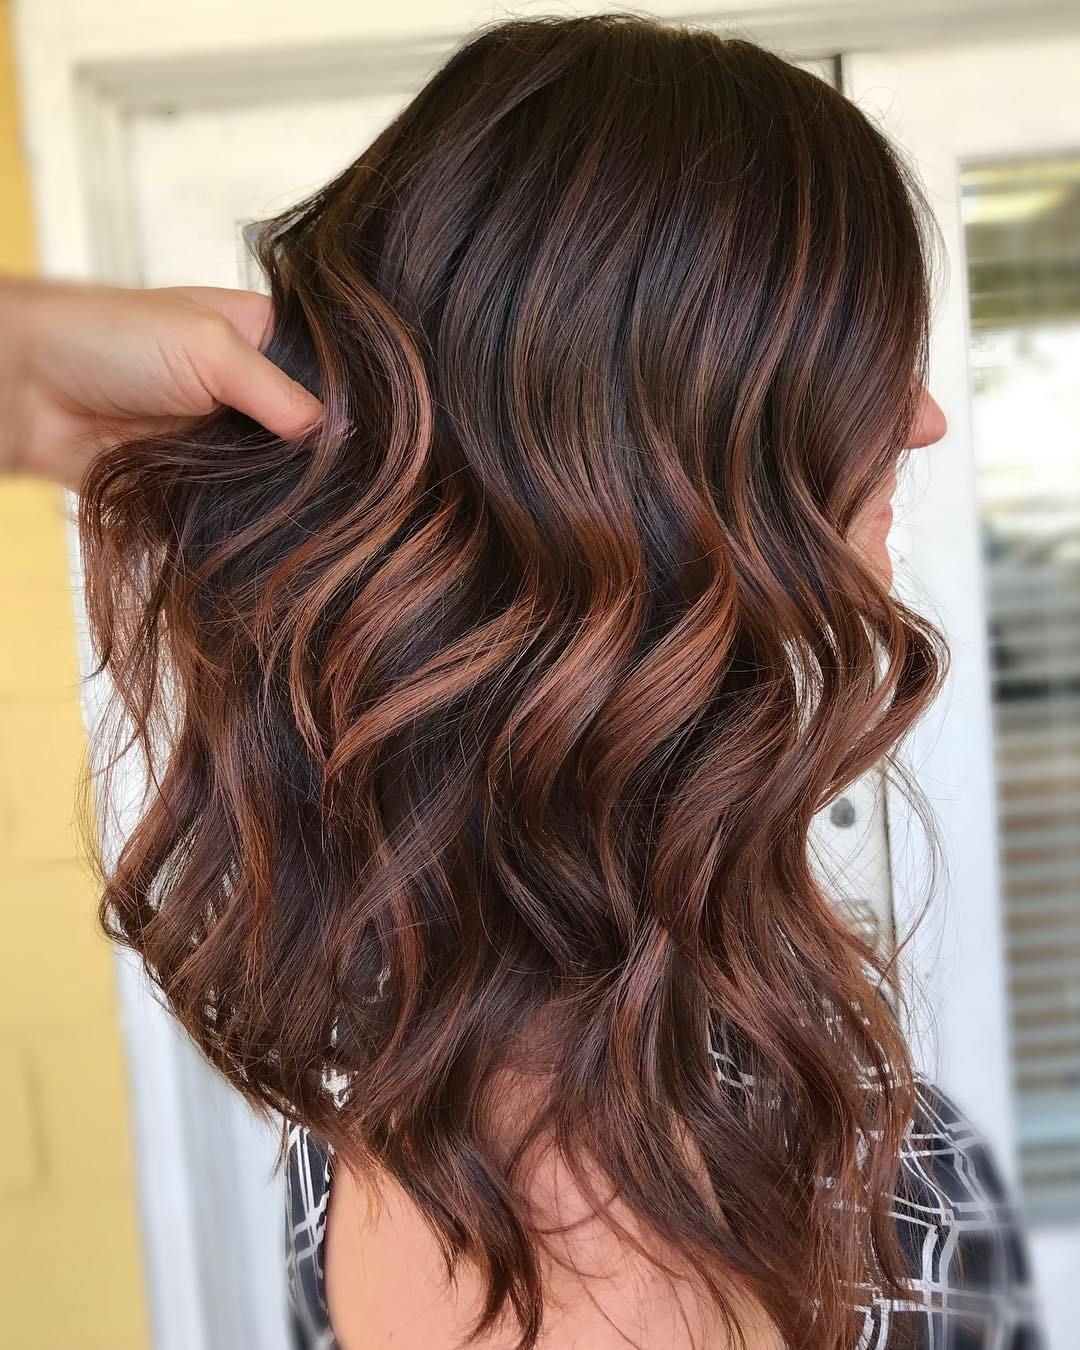 60 Hairstyles Featuring Dark Brown Hair With Highlights Brown Hair With Highlights Hair Highlights Dark Hair With Highlights